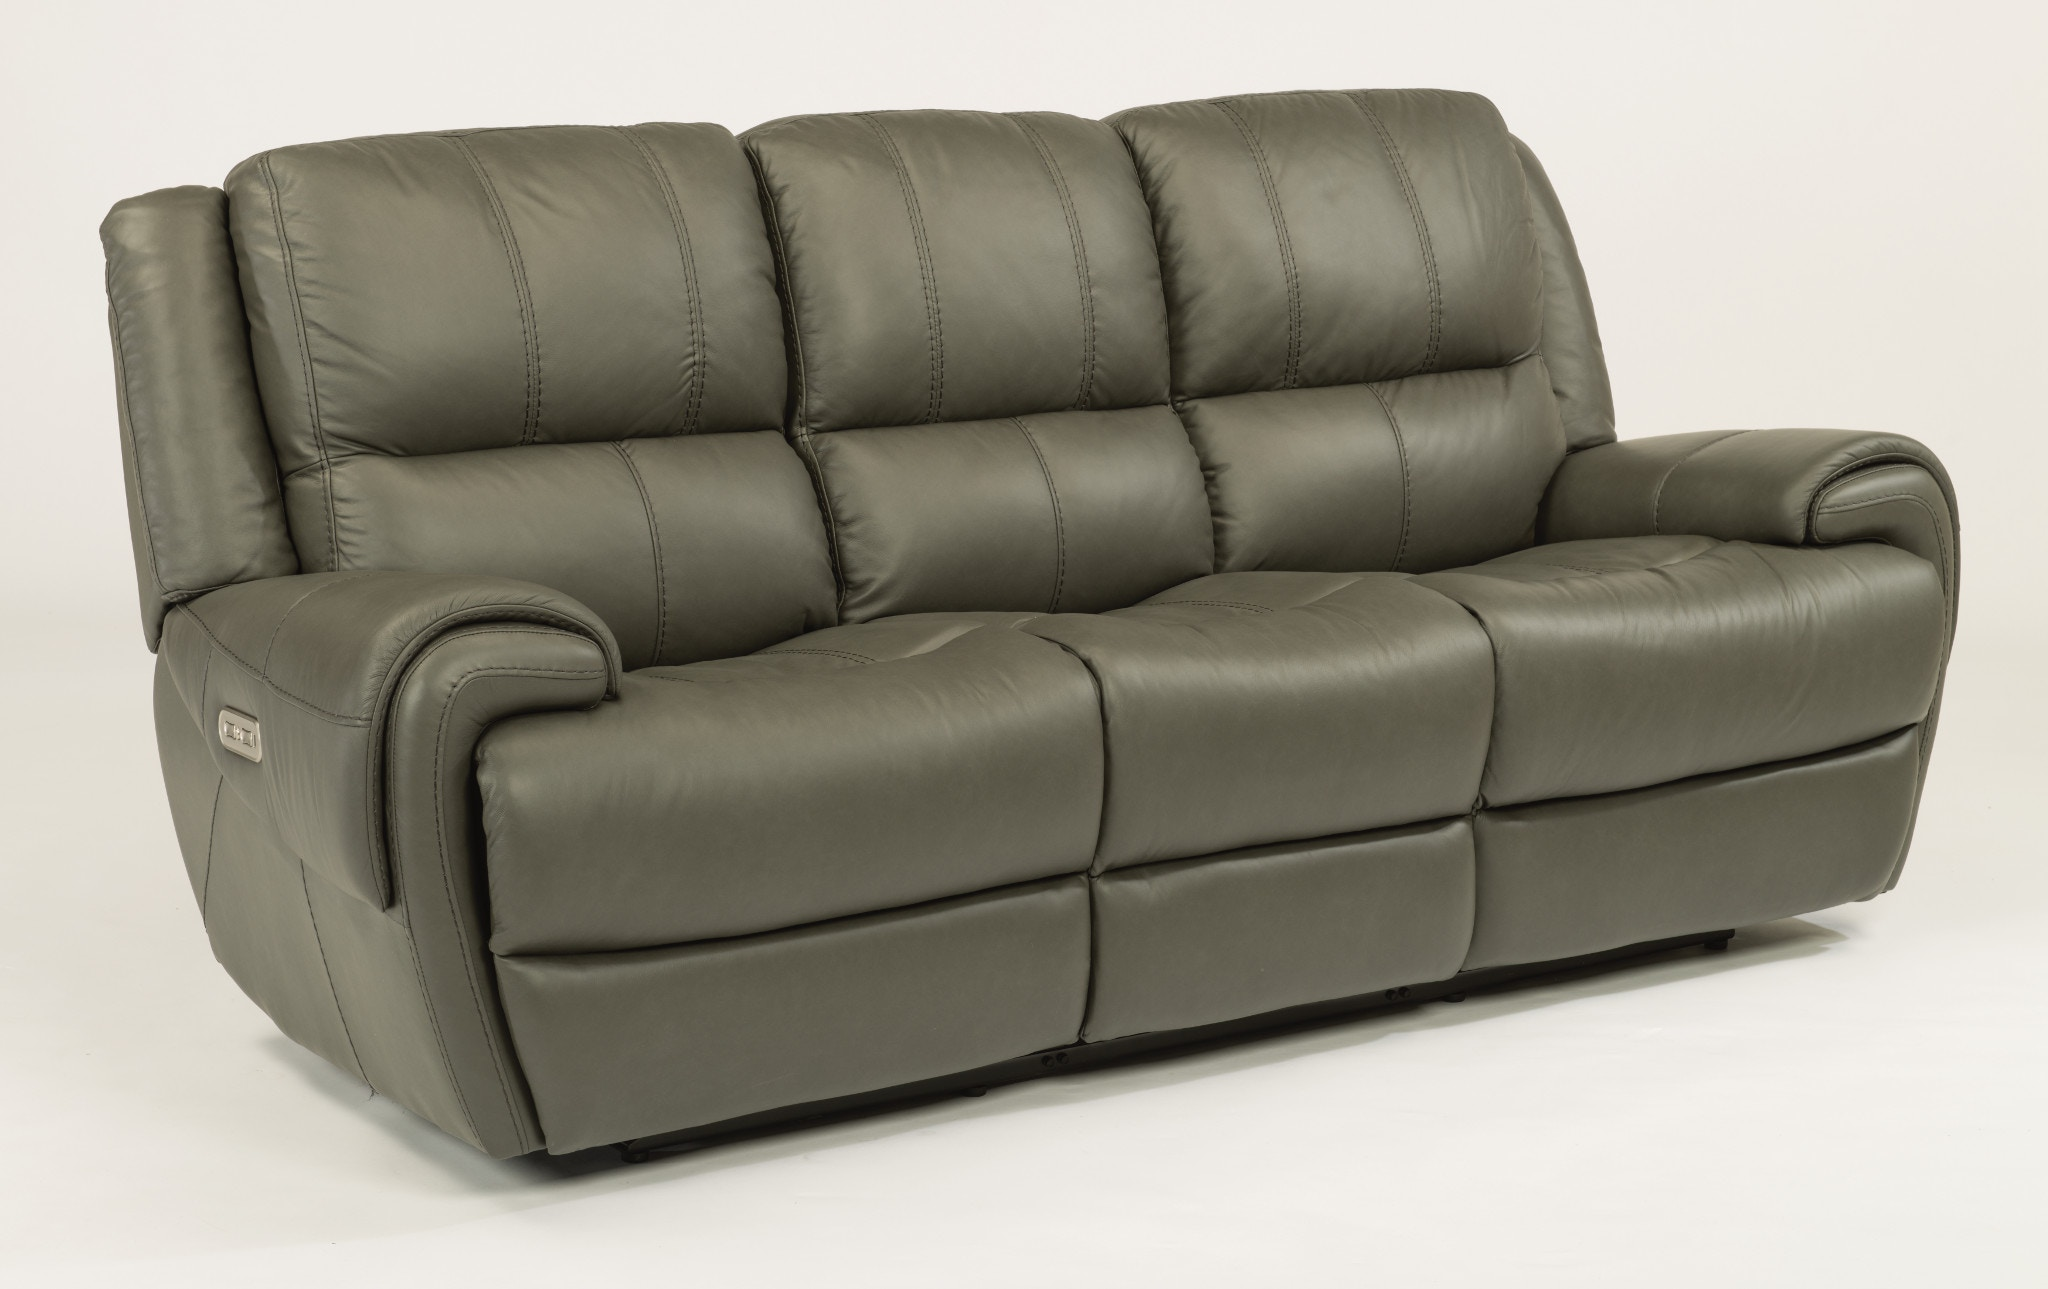 Flexsteel Leather Sofa W Adjustable Headrest 156708